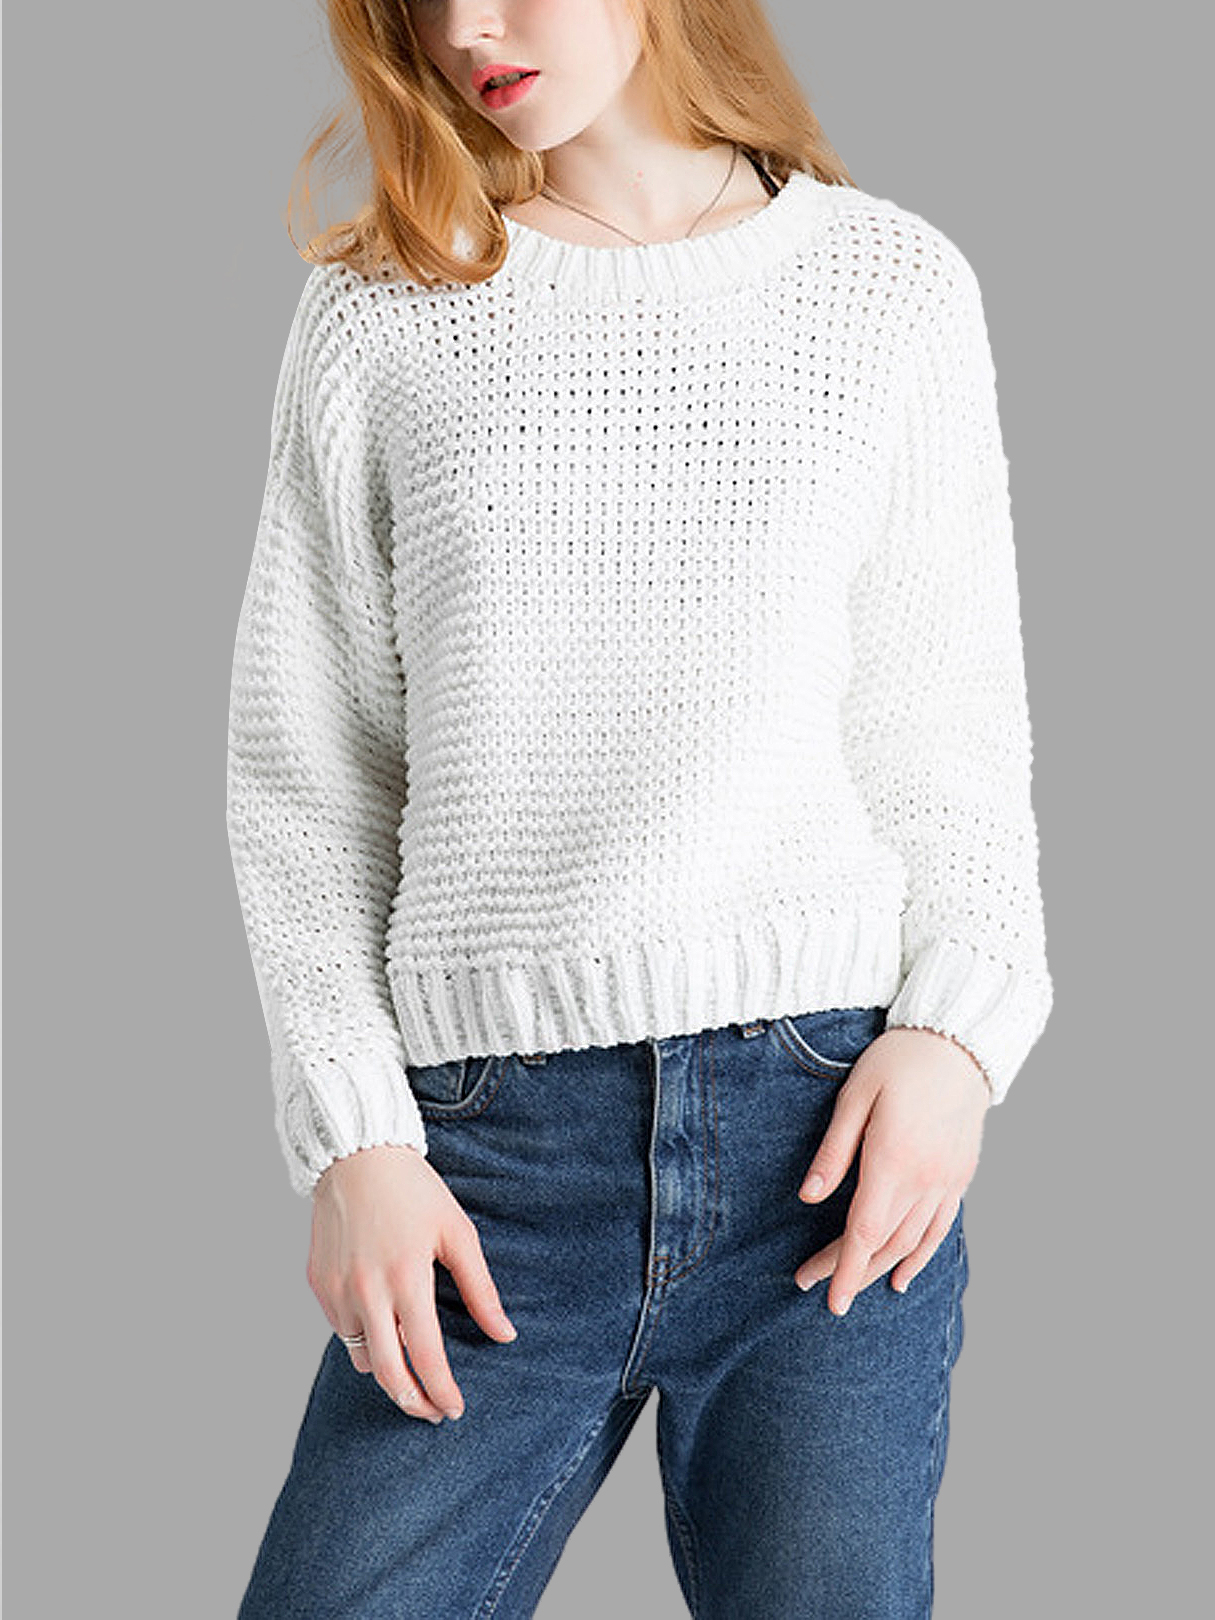 White Knitted Jumper with Crew Neck от Yoins.com INT